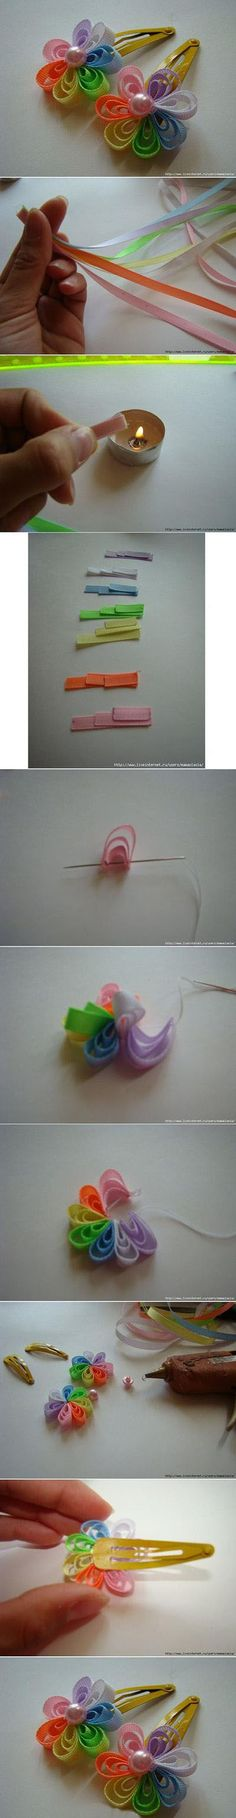 Diy Colorful Hair Clip | DIY & Crafts Tutorials